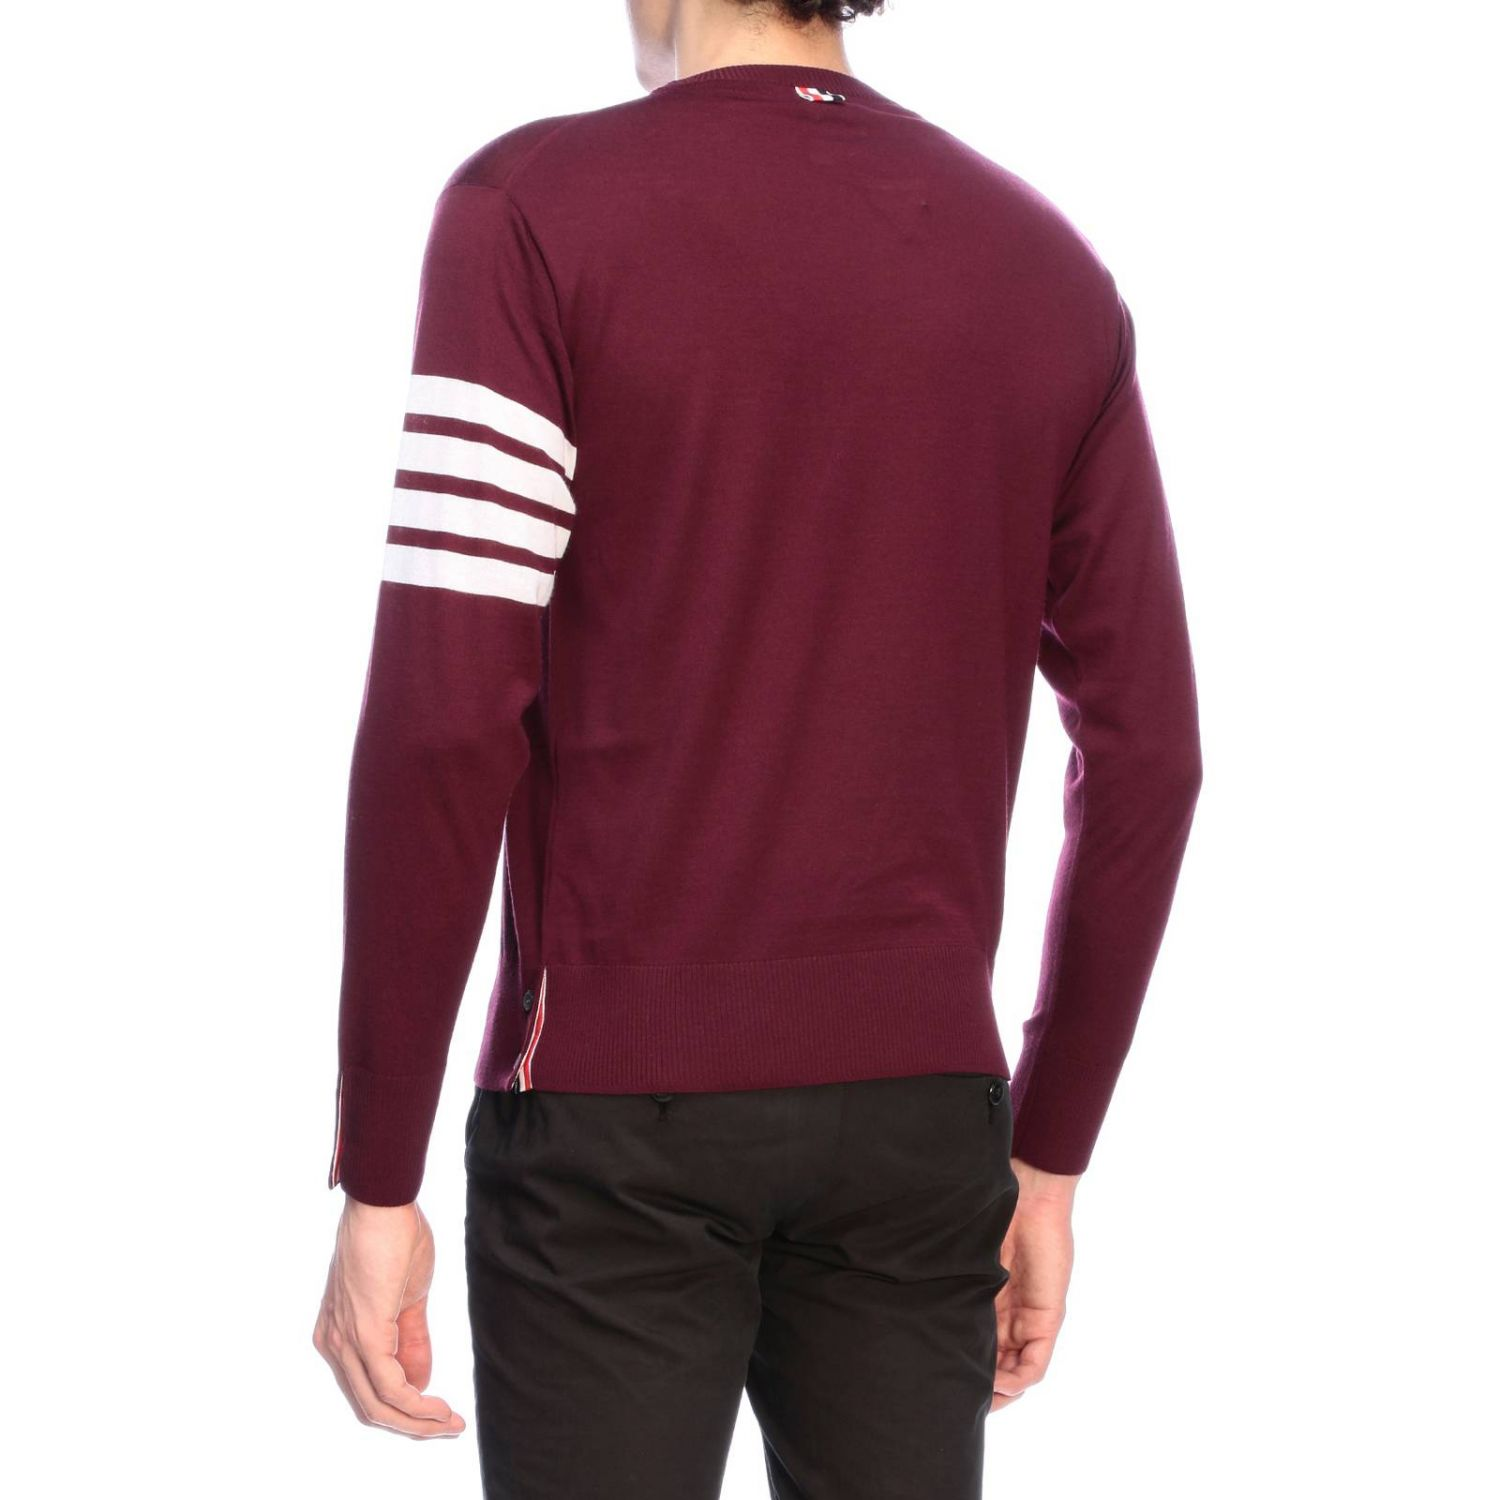 Pull homme Thom Browne bordeaux 3